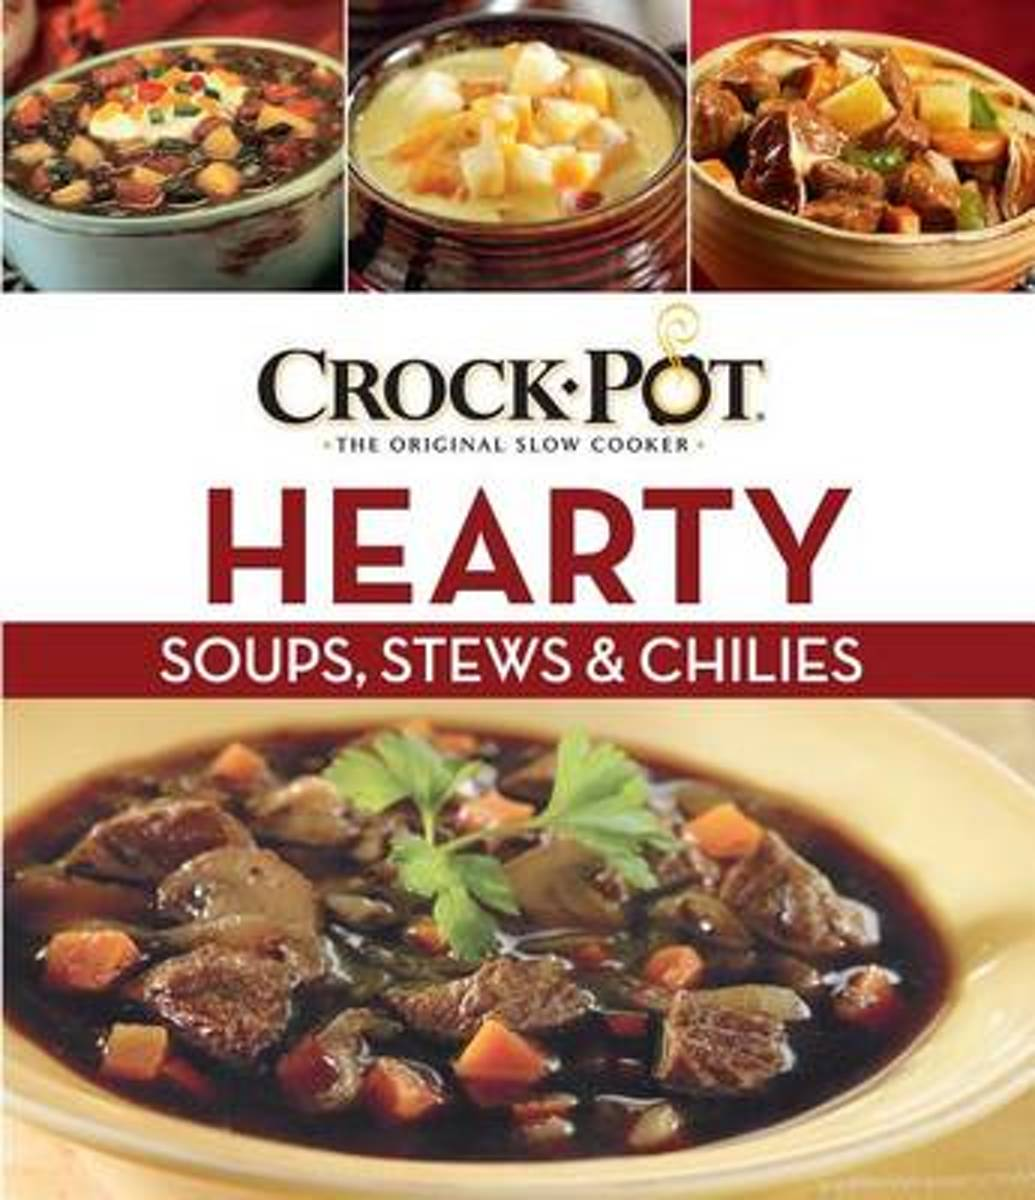 Crock-Pot Hearty Soups and Stews